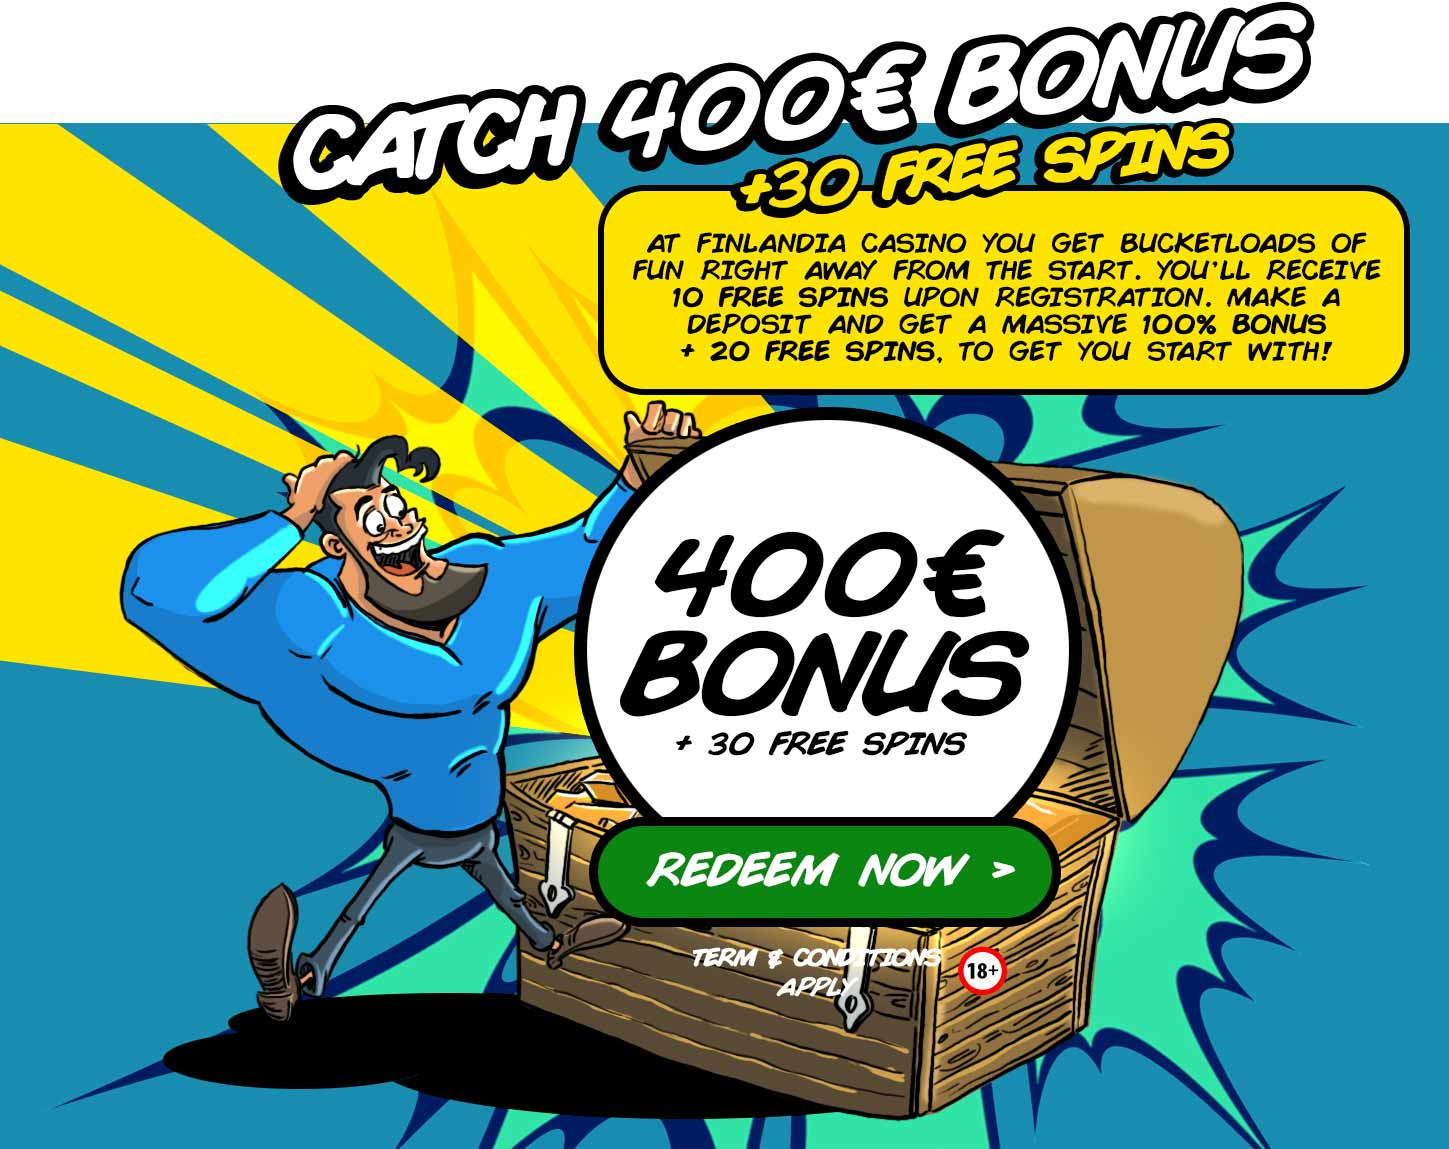 Catch 100 € bonus + 100 free spins. At Finlandia Casino you get bucketloads of fun right away from the start. We want you to enjoy playing longer, so here's a 100 % bonus + 100 extra spins for you to start with!